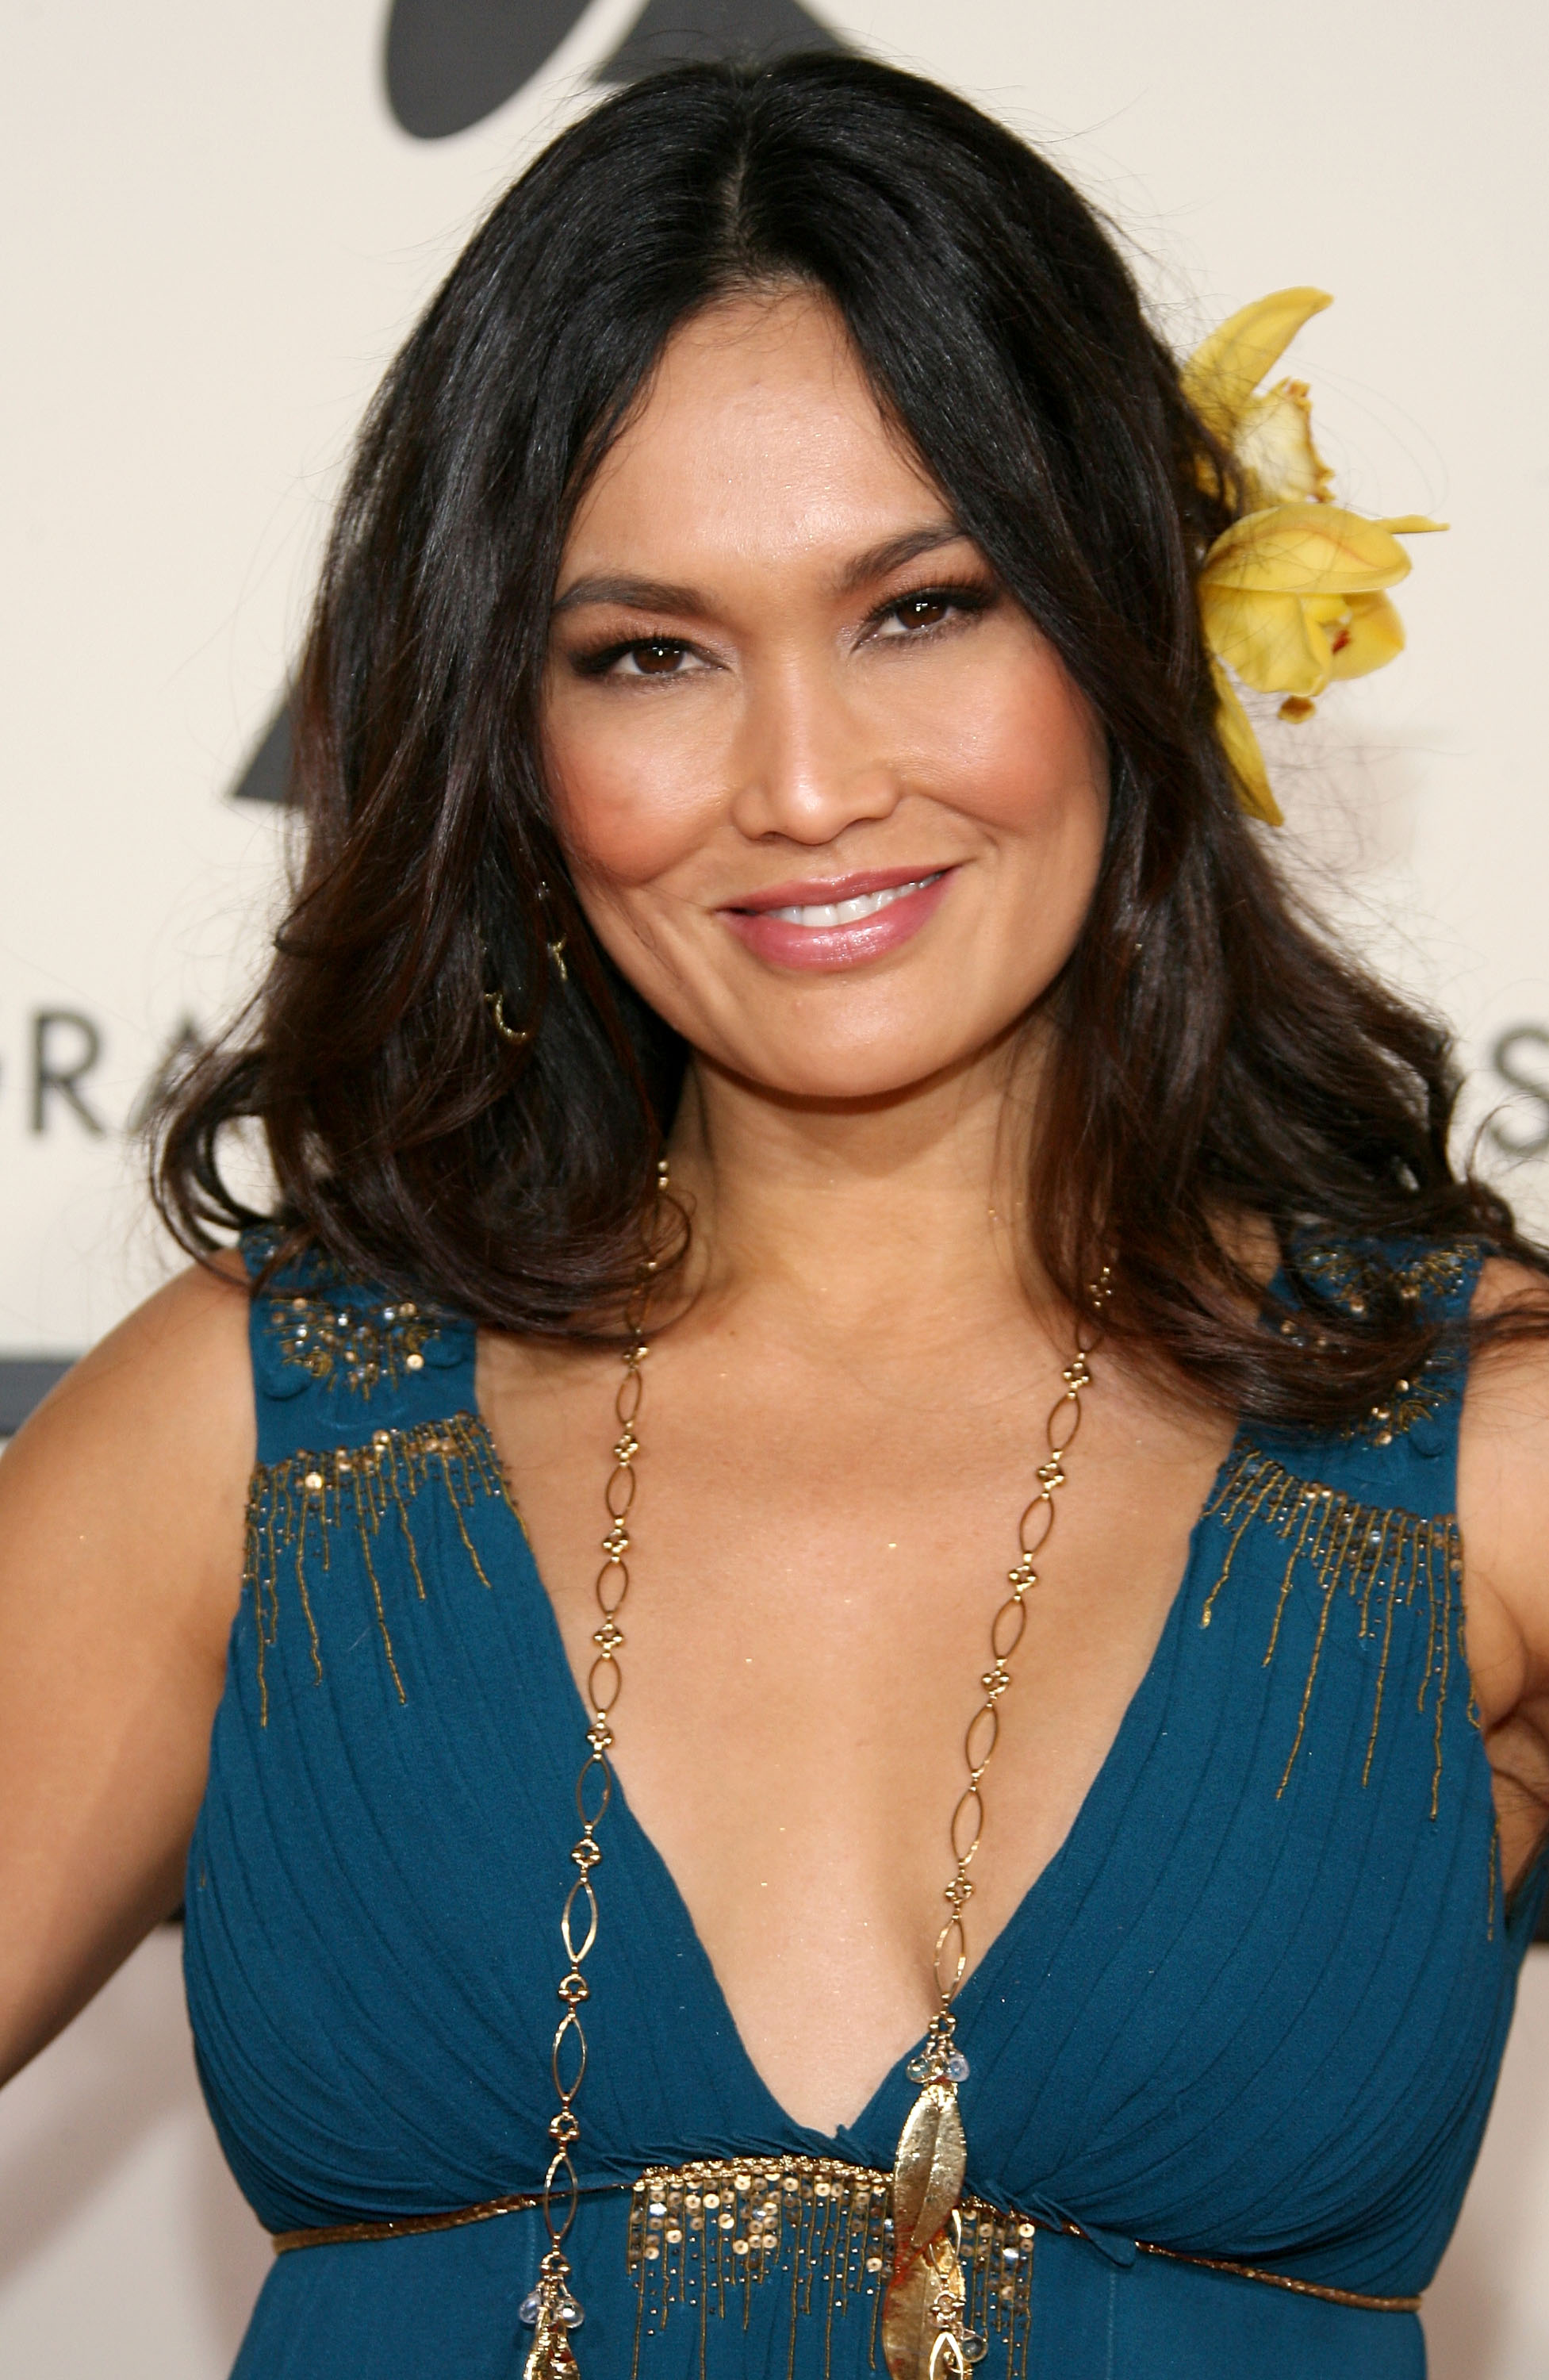 92884_by_Septimiu_Tia_Carrere-50th_Annual_Grammy_Awards_Arrivals-02_583_122_459lo.jpg